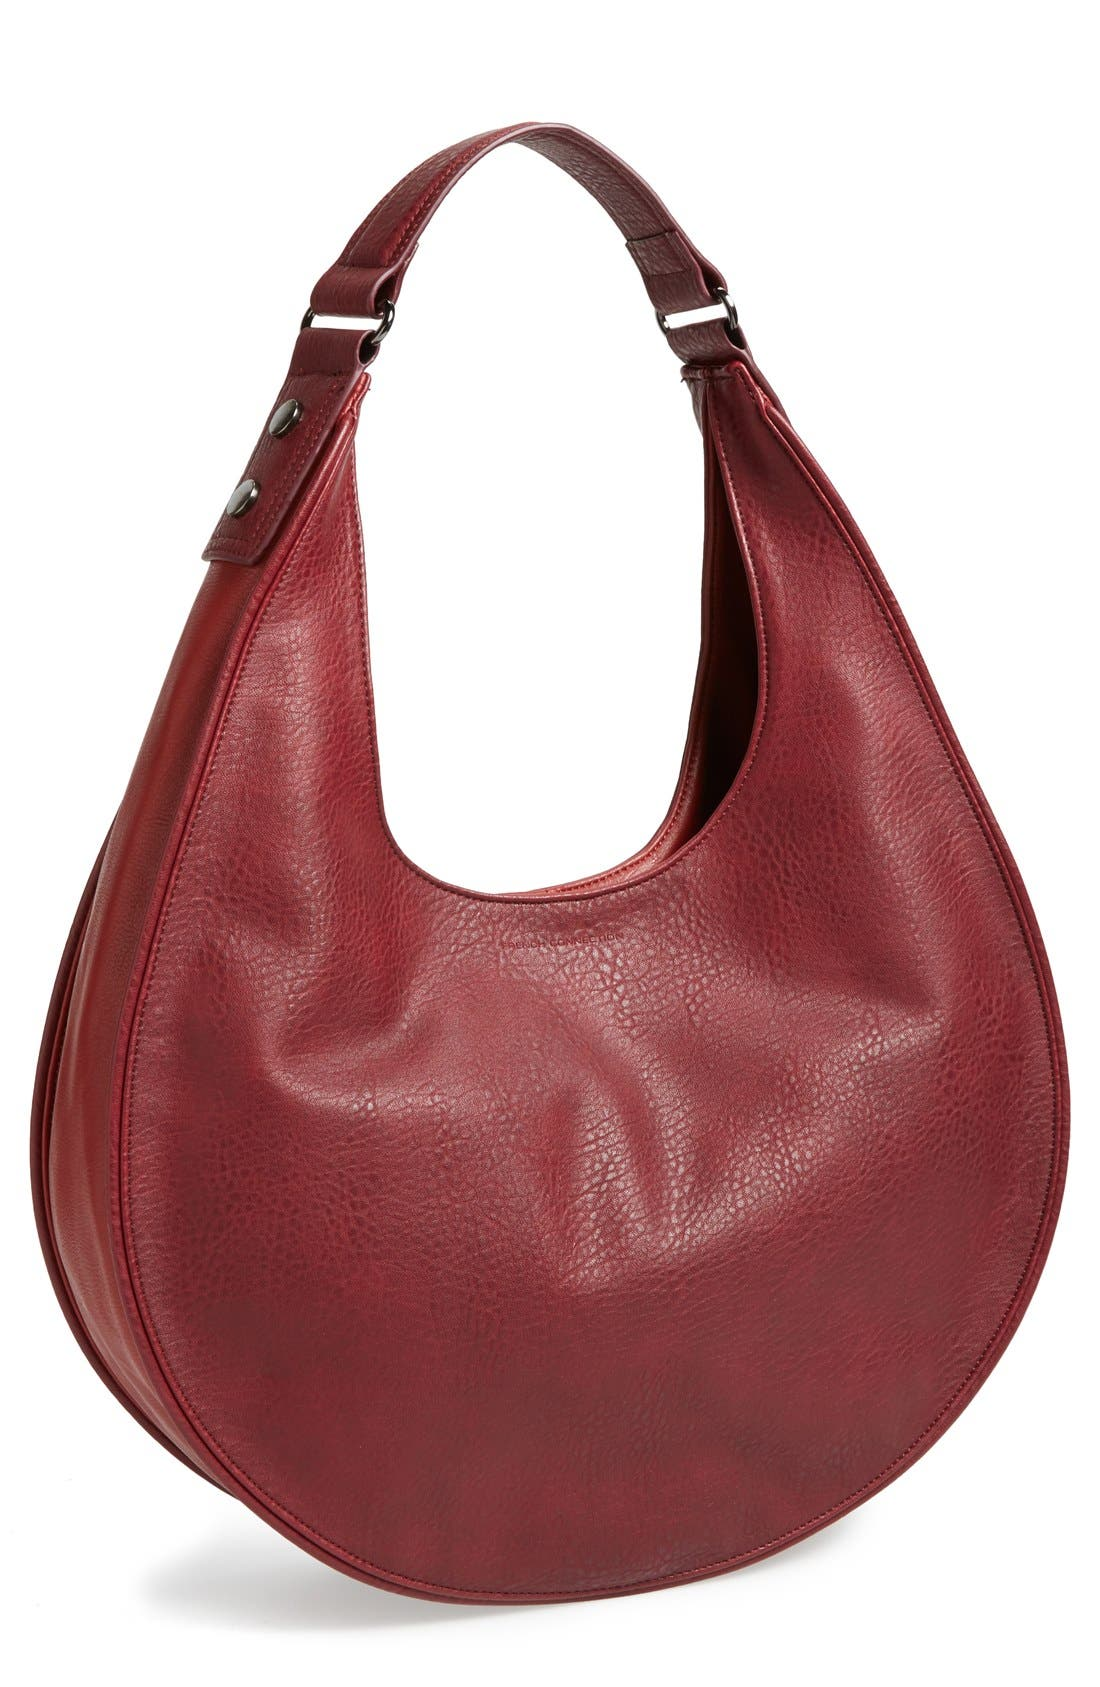 Alternate Image 1 Selected - French Connection 'Elite' Hobo